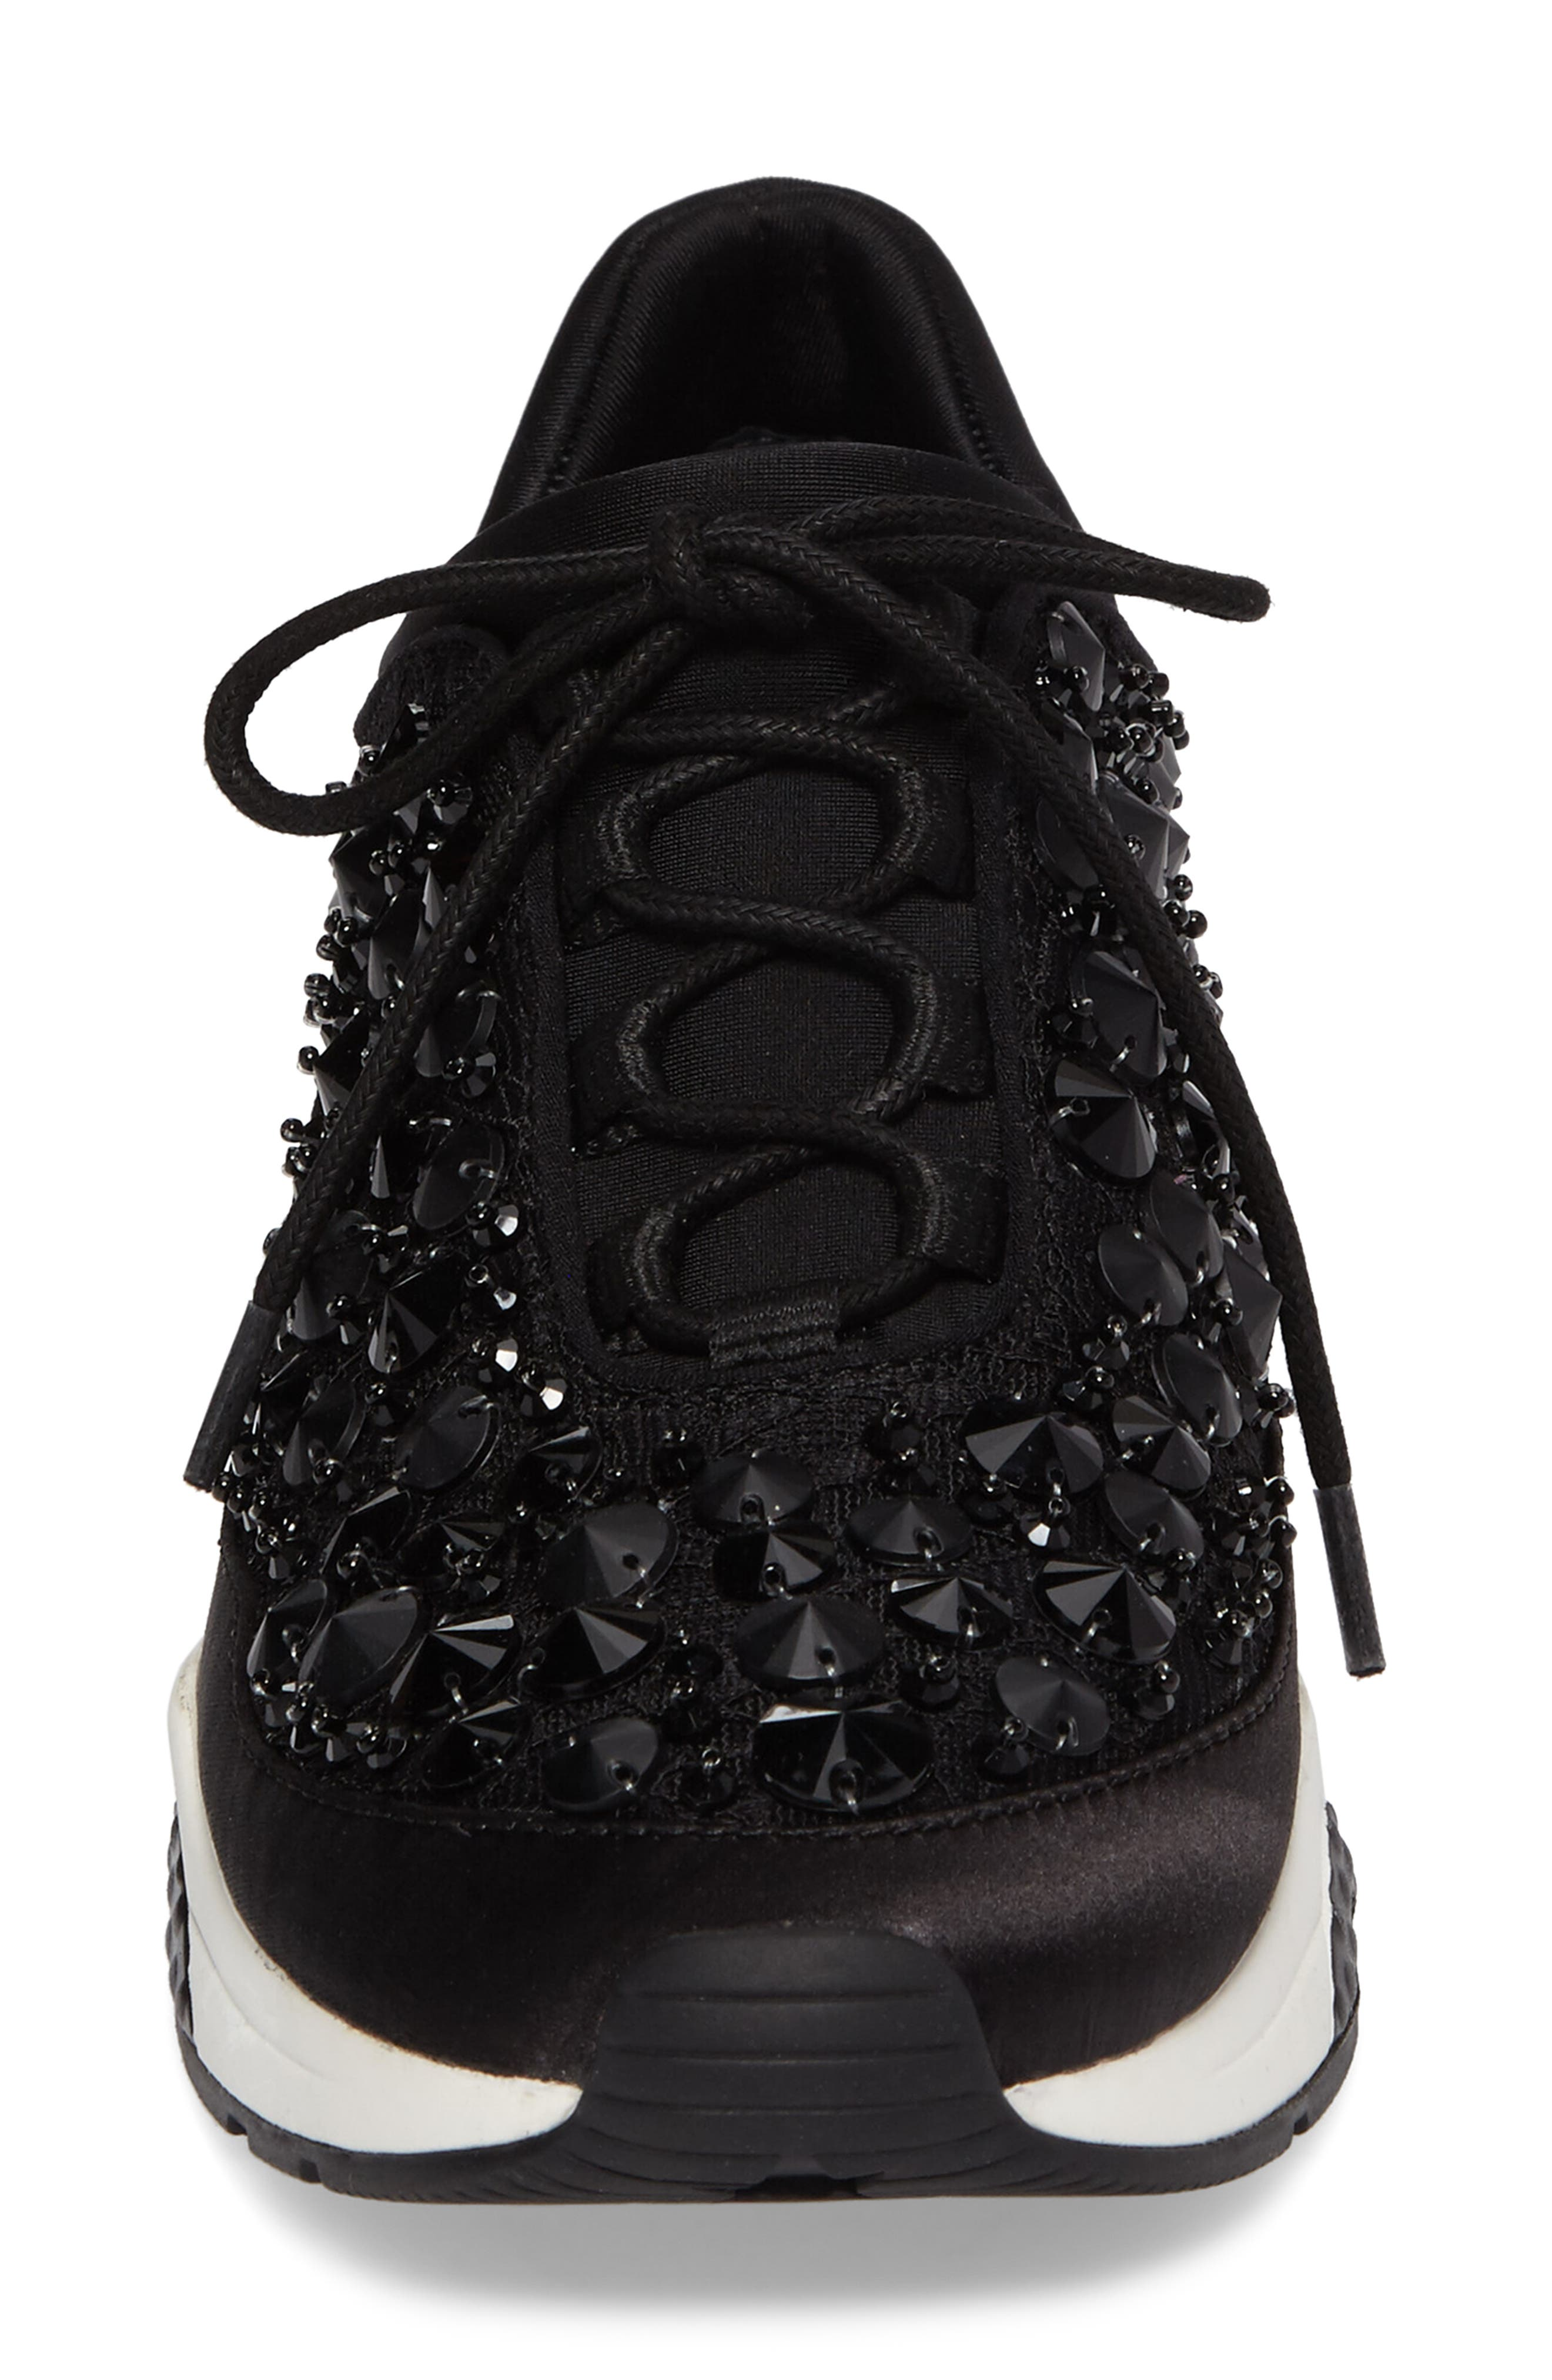 Muse Beads Sneaker,                             Alternate thumbnail 4, color,                             001